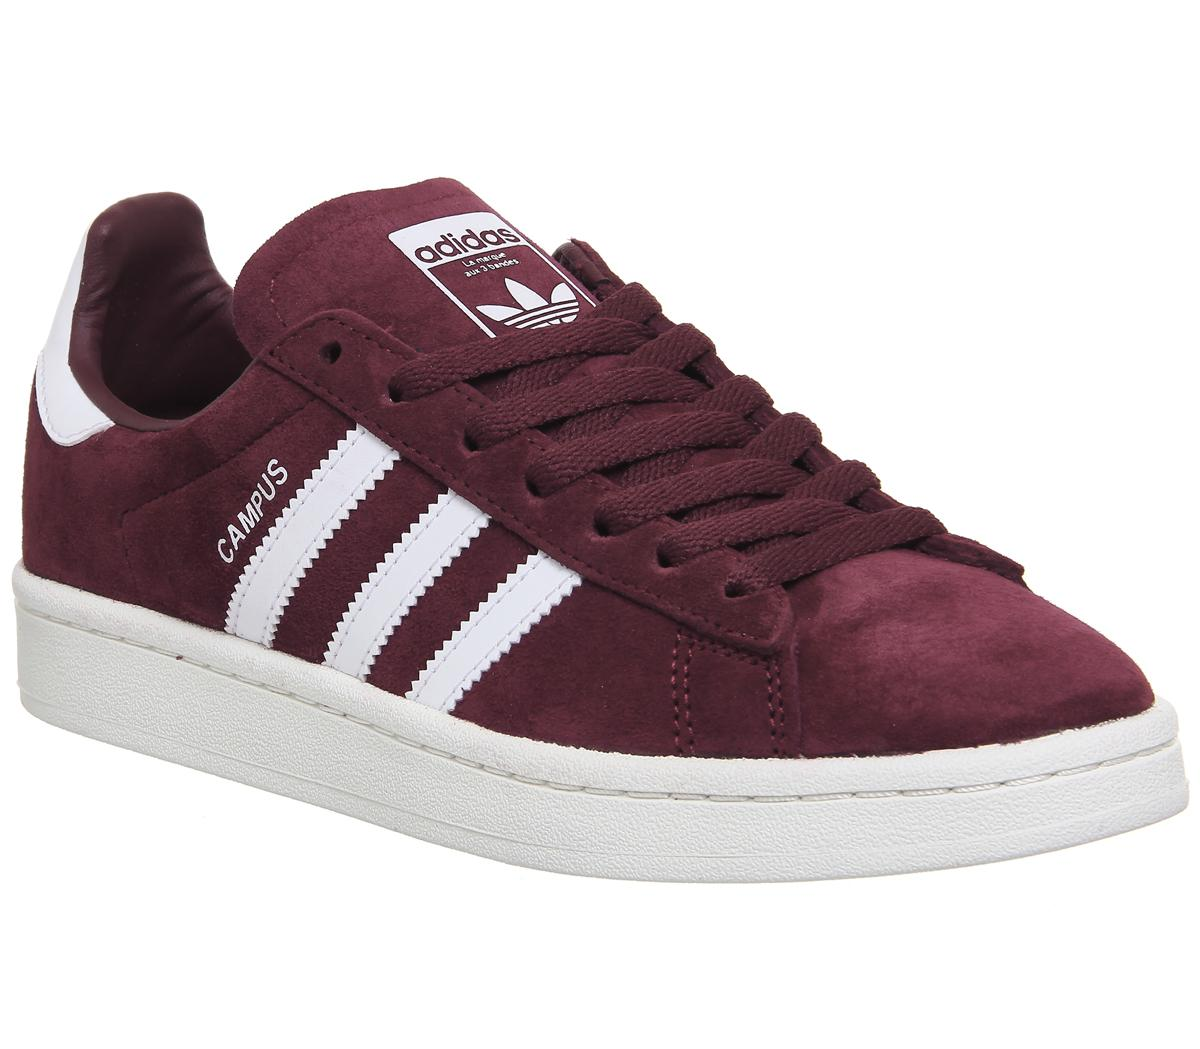 adidas Gazelle Jnr Trainers Collegiate Burgundy Hers trainers